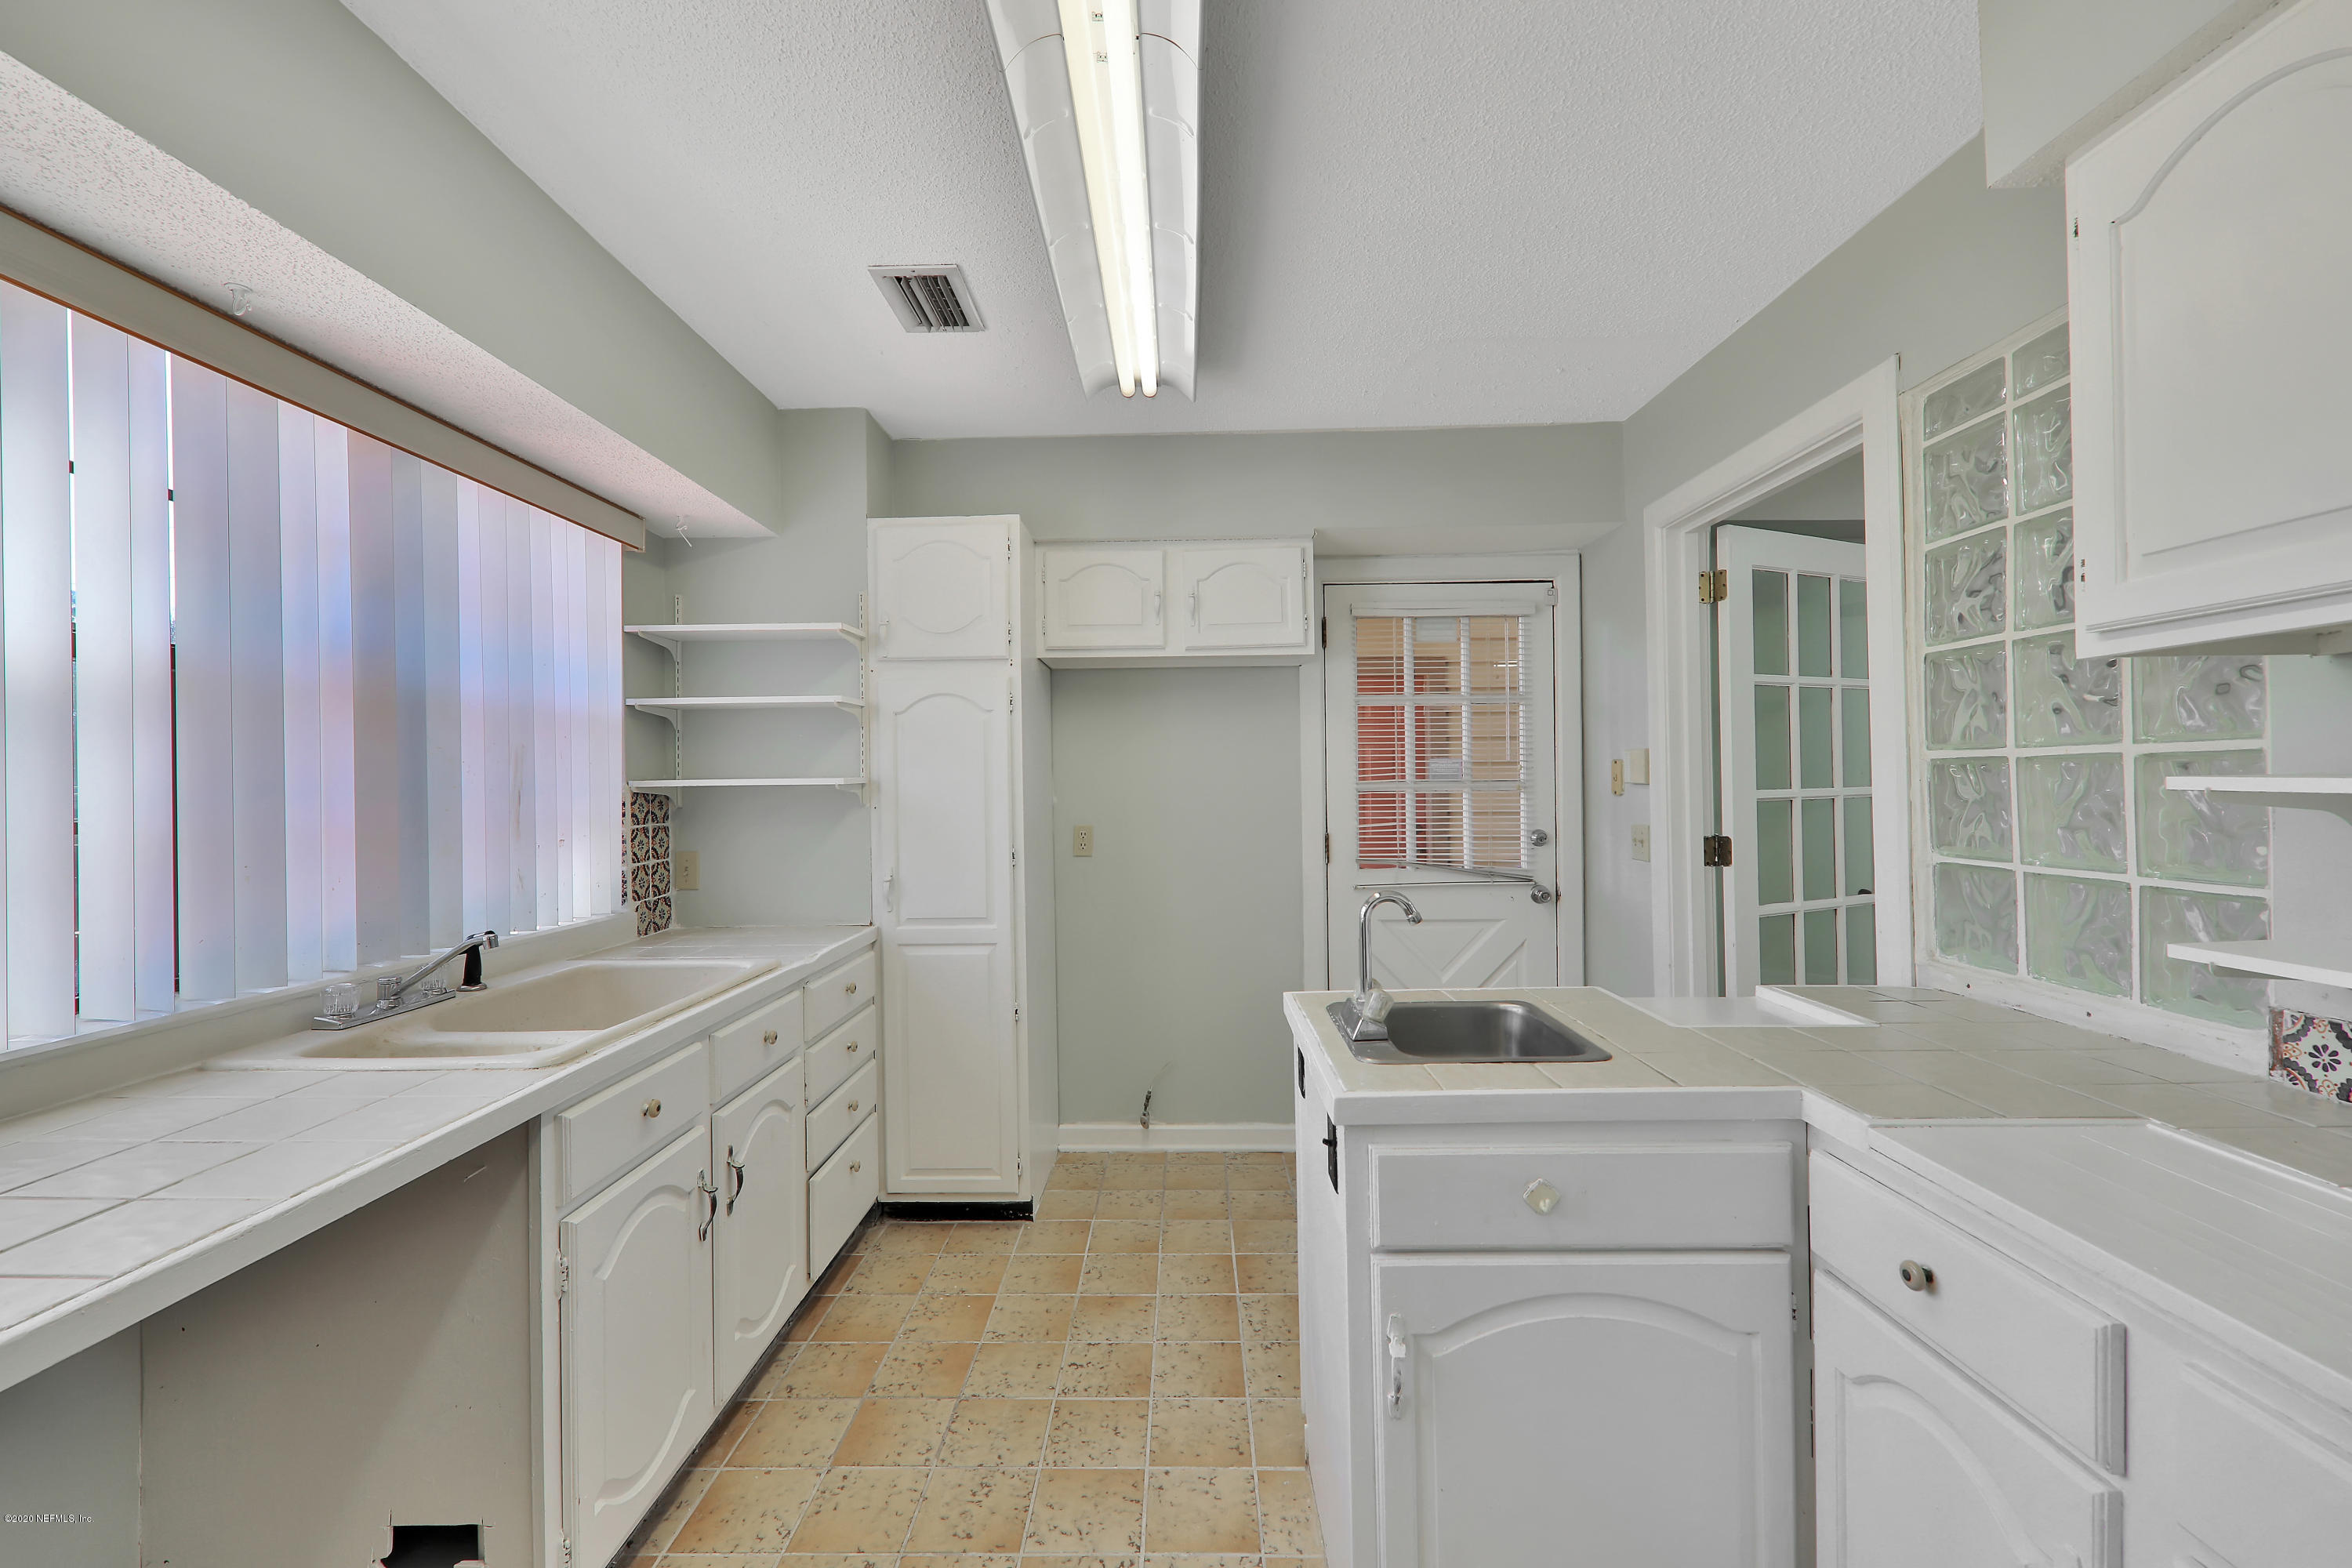 Image 21 of 35 For 4043 Baymeadows Rd